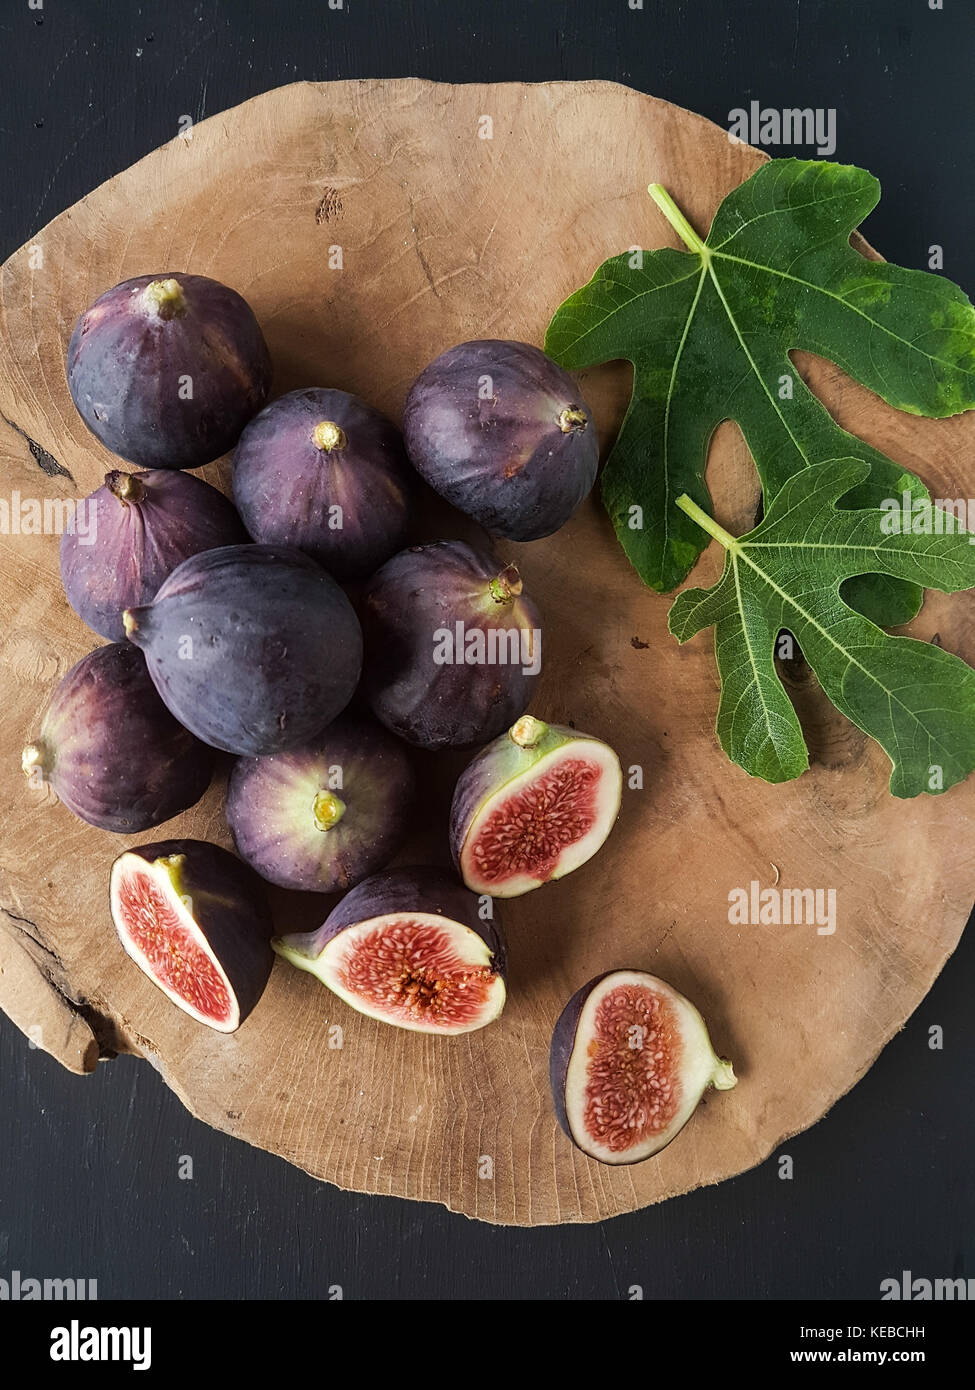 Figues sur fond noir Photo Stock